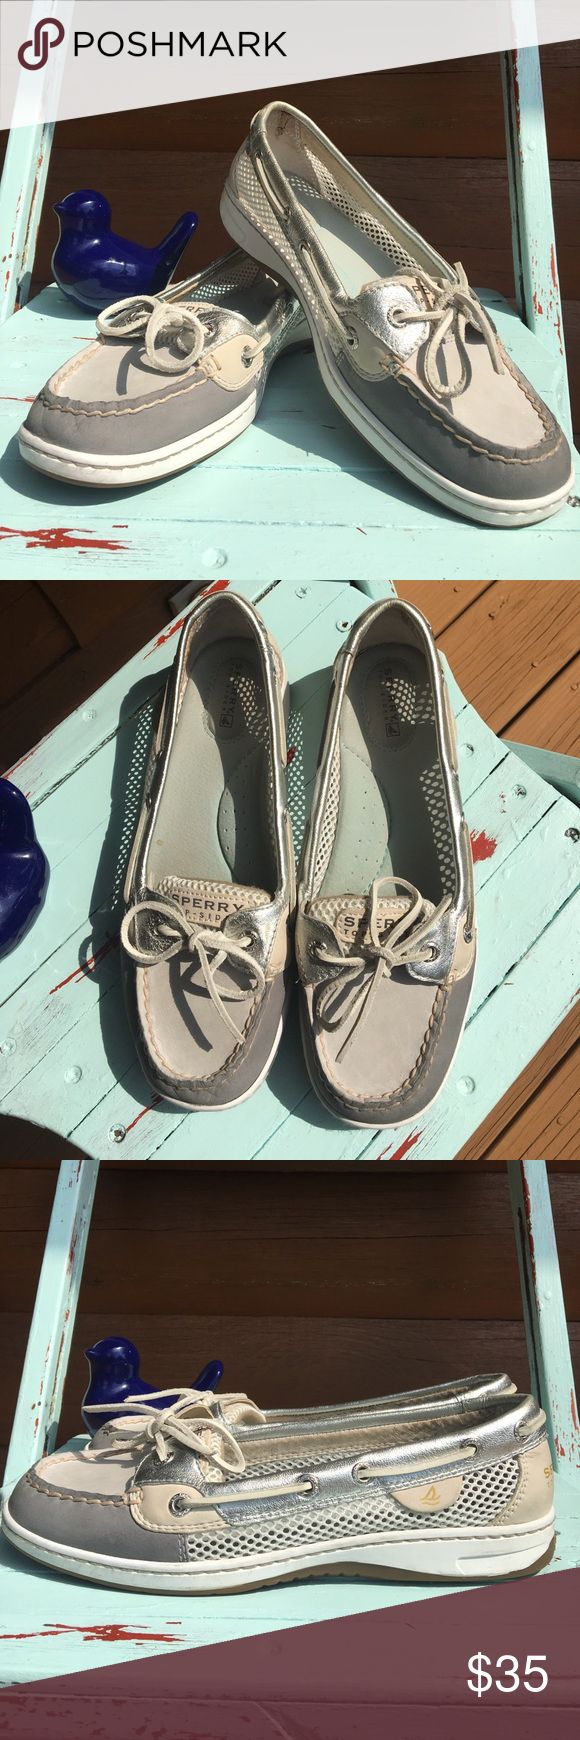 Sperry boat shoes Silver metallic leather and mesh breathable sides. Gently used mint condition Sperry Top-Sider Shoes Flats & Loafers